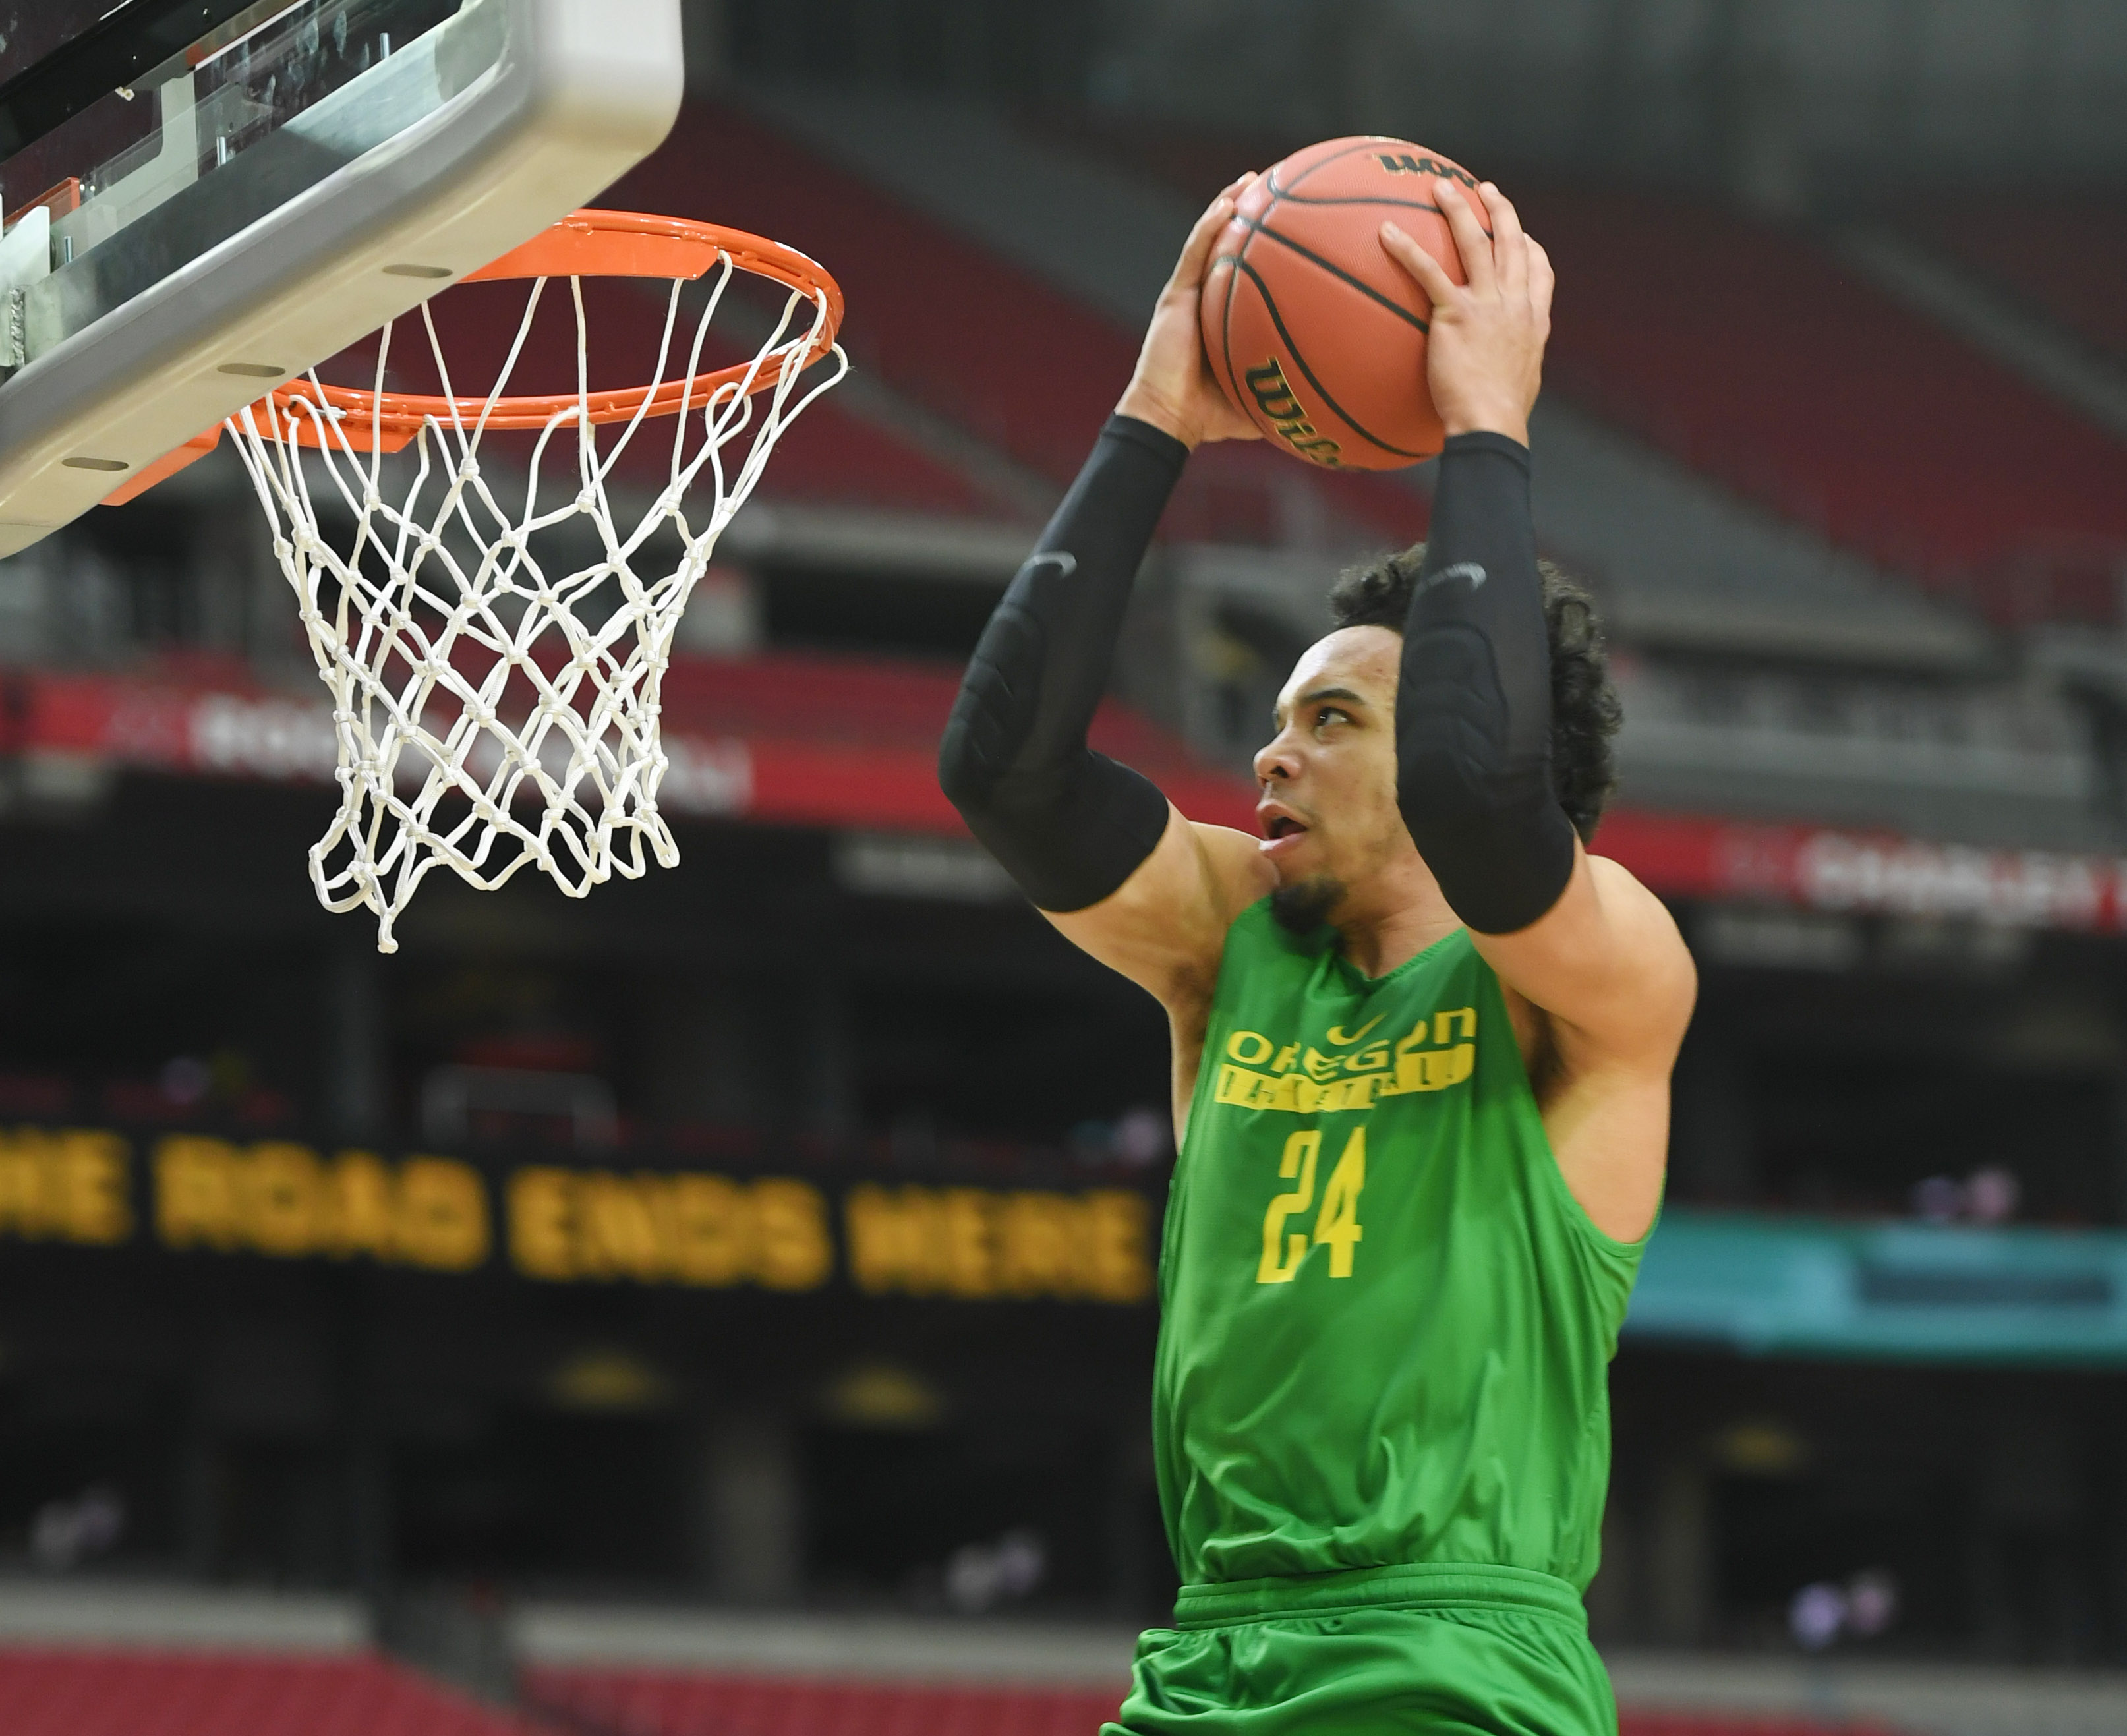 Two Oregon stars could be perfect fits for the Miami Heat